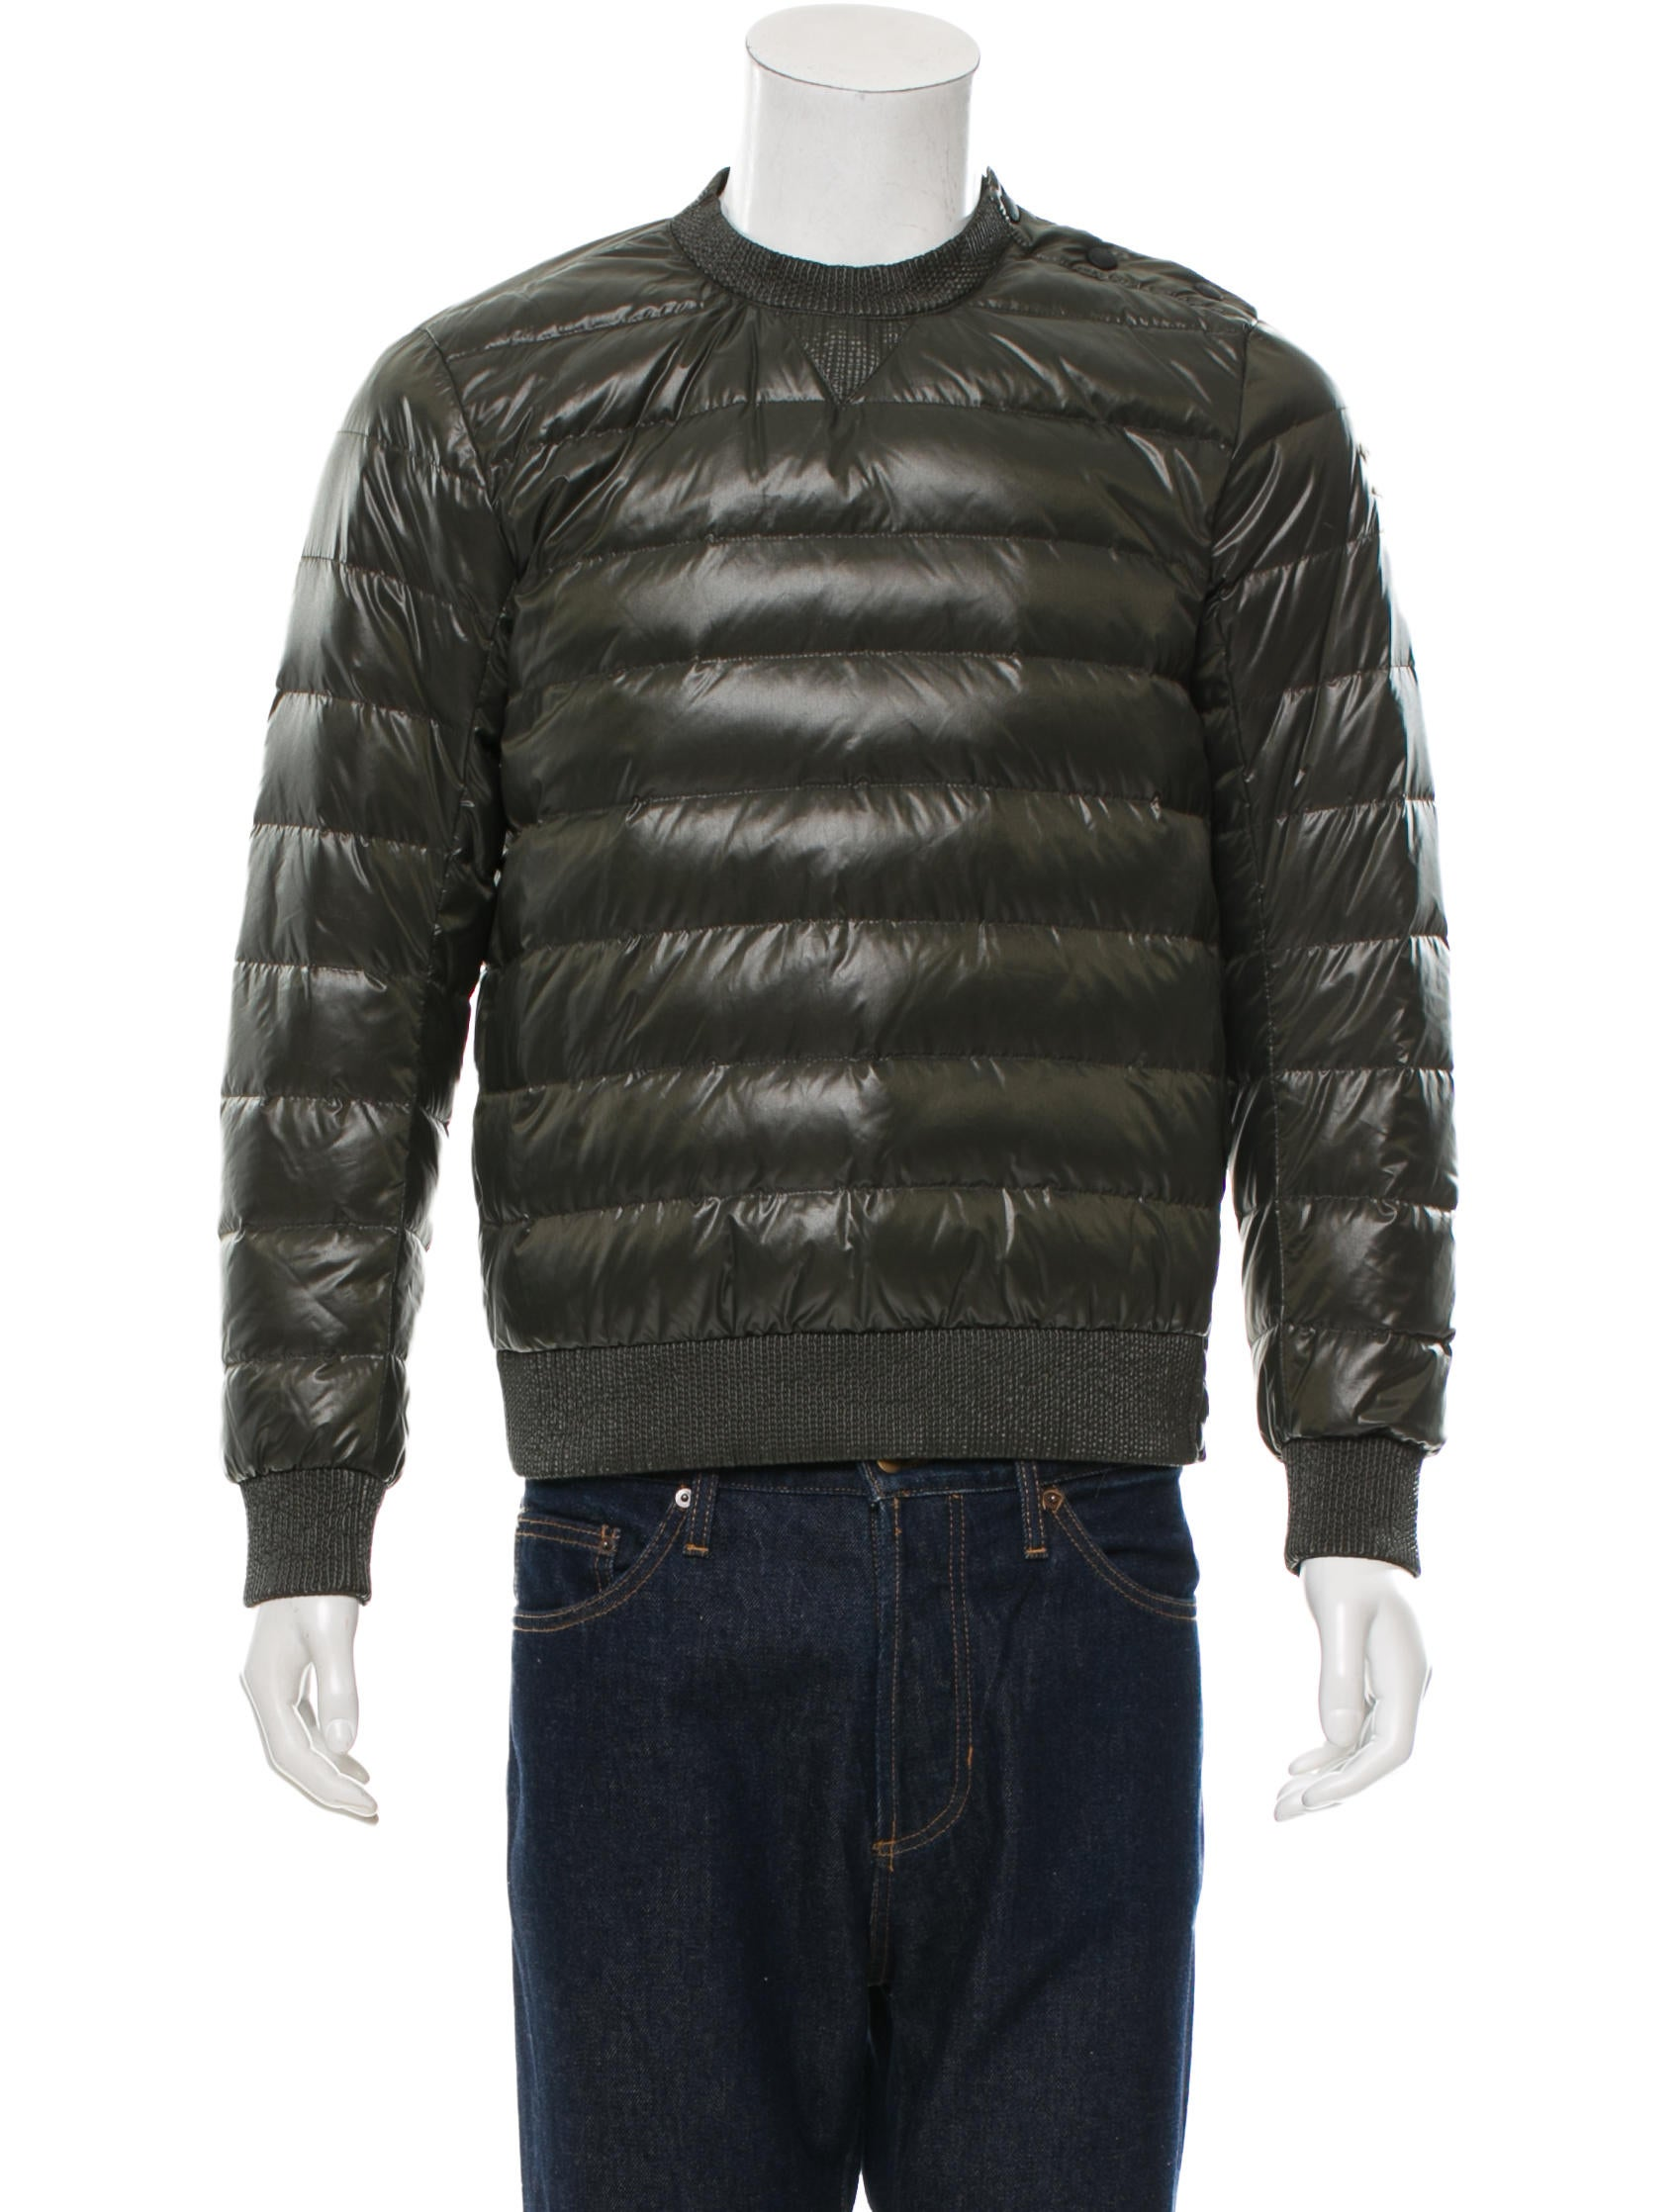 Moncler Pullover Puffer Jacket - Clothing - MOC22179 | The RealReal